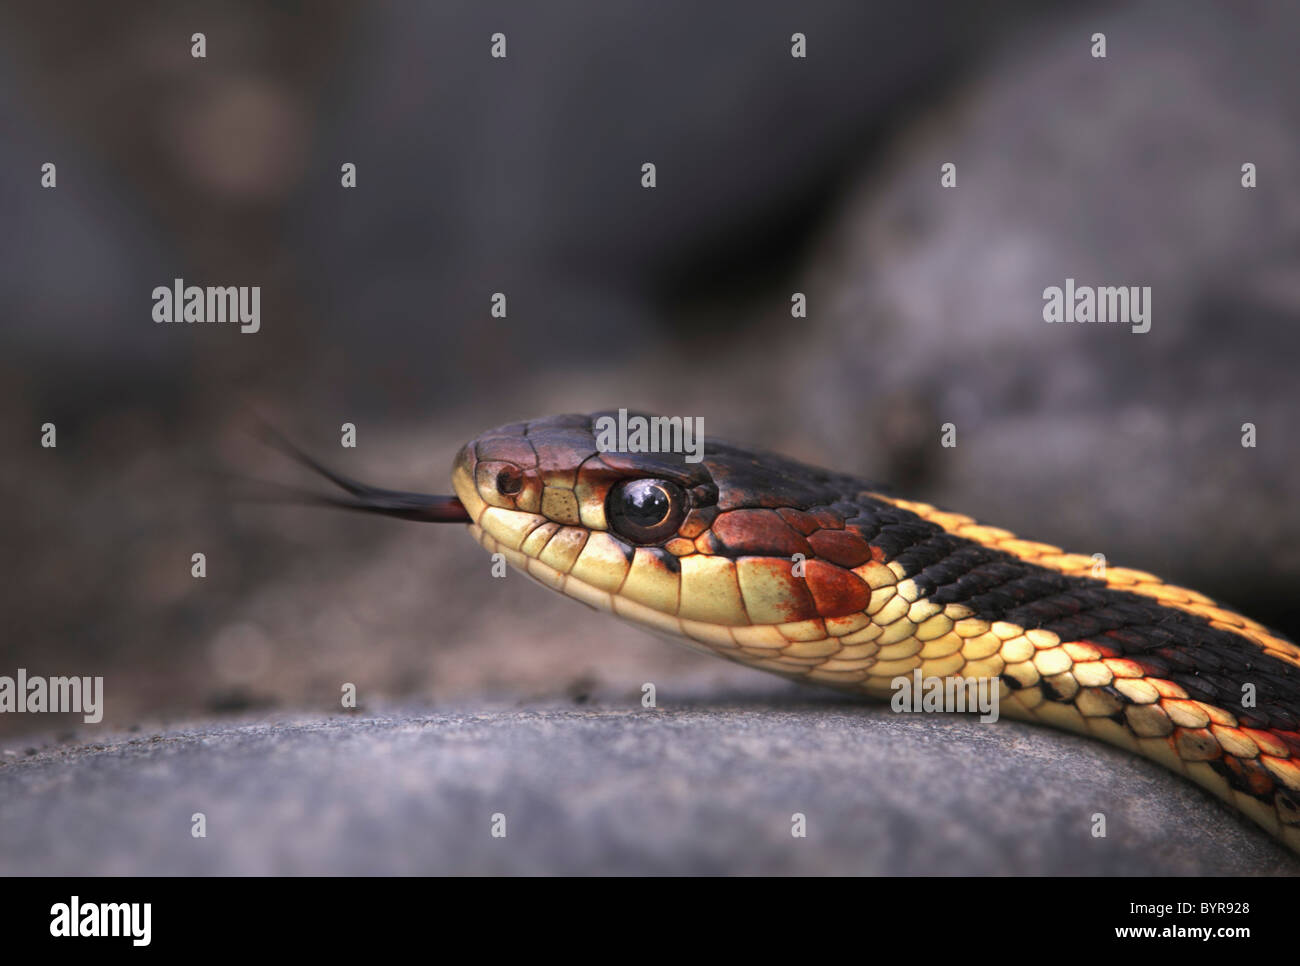 garter snake (thamnophis) shows it's forked tongue; price creek, british columbia, canada - Stock Image